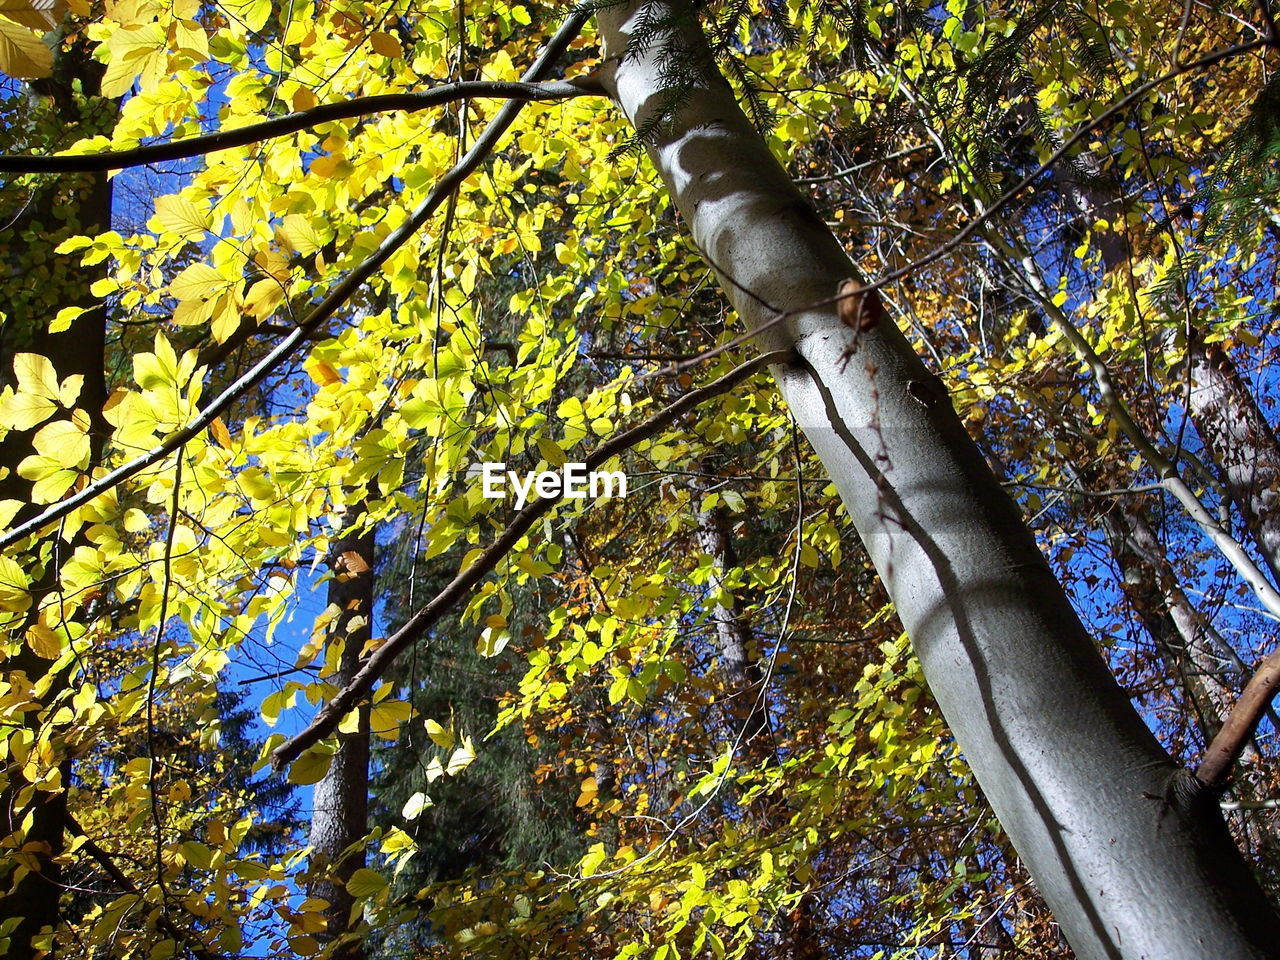 tree, plant, growth, branch, low angle view, beauty in nature, nature, day, plant part, leaf, autumn, green color, outdoors, no people, tree trunk, trunk, forest, land, flower, change